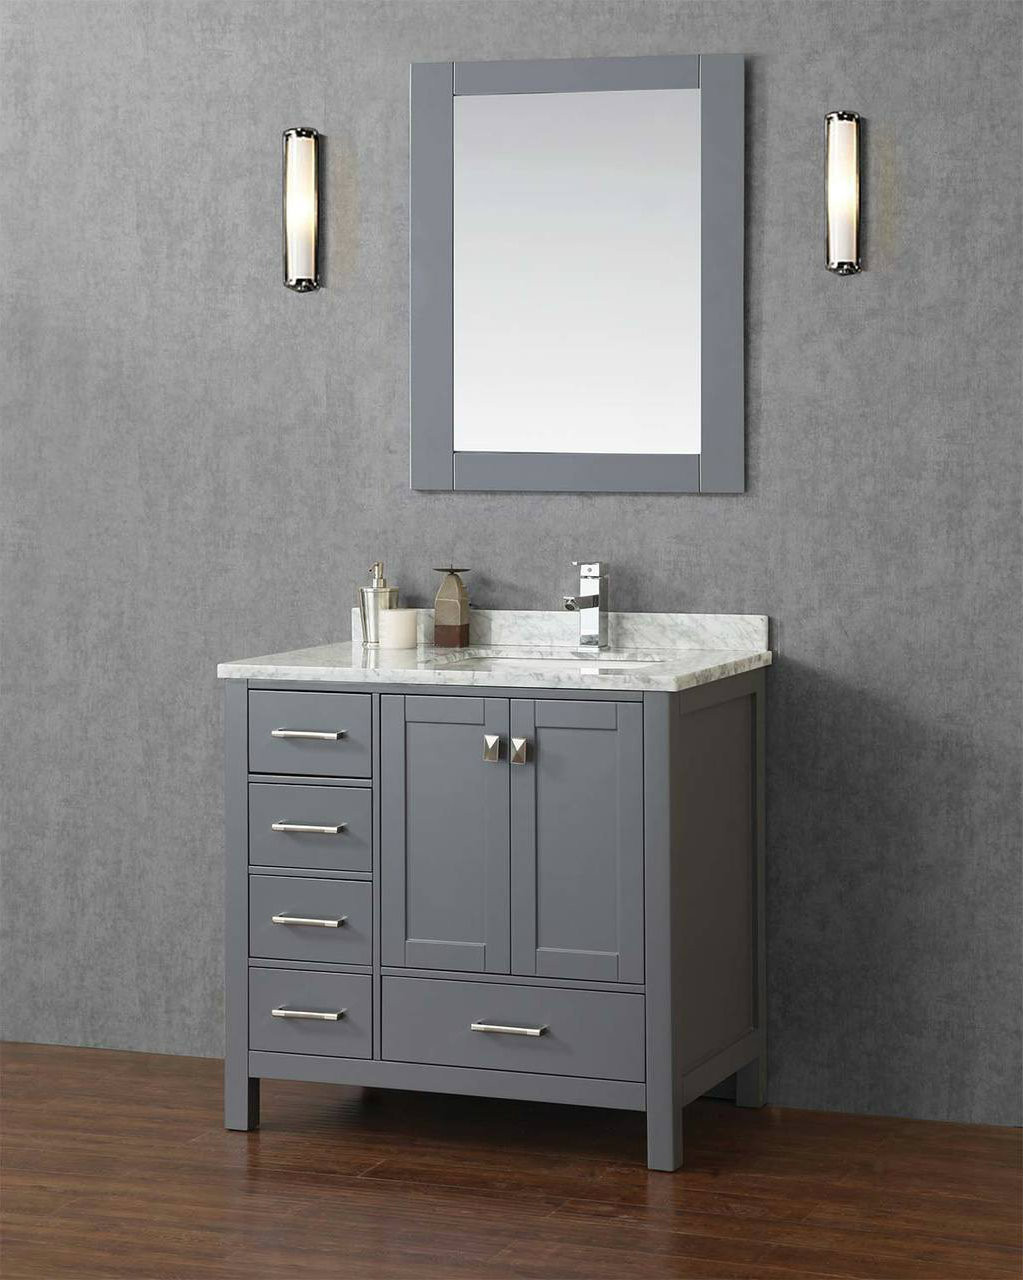 Key West 40 Gray Offset Right Sink Bathroom Vanity Royal Bath Place